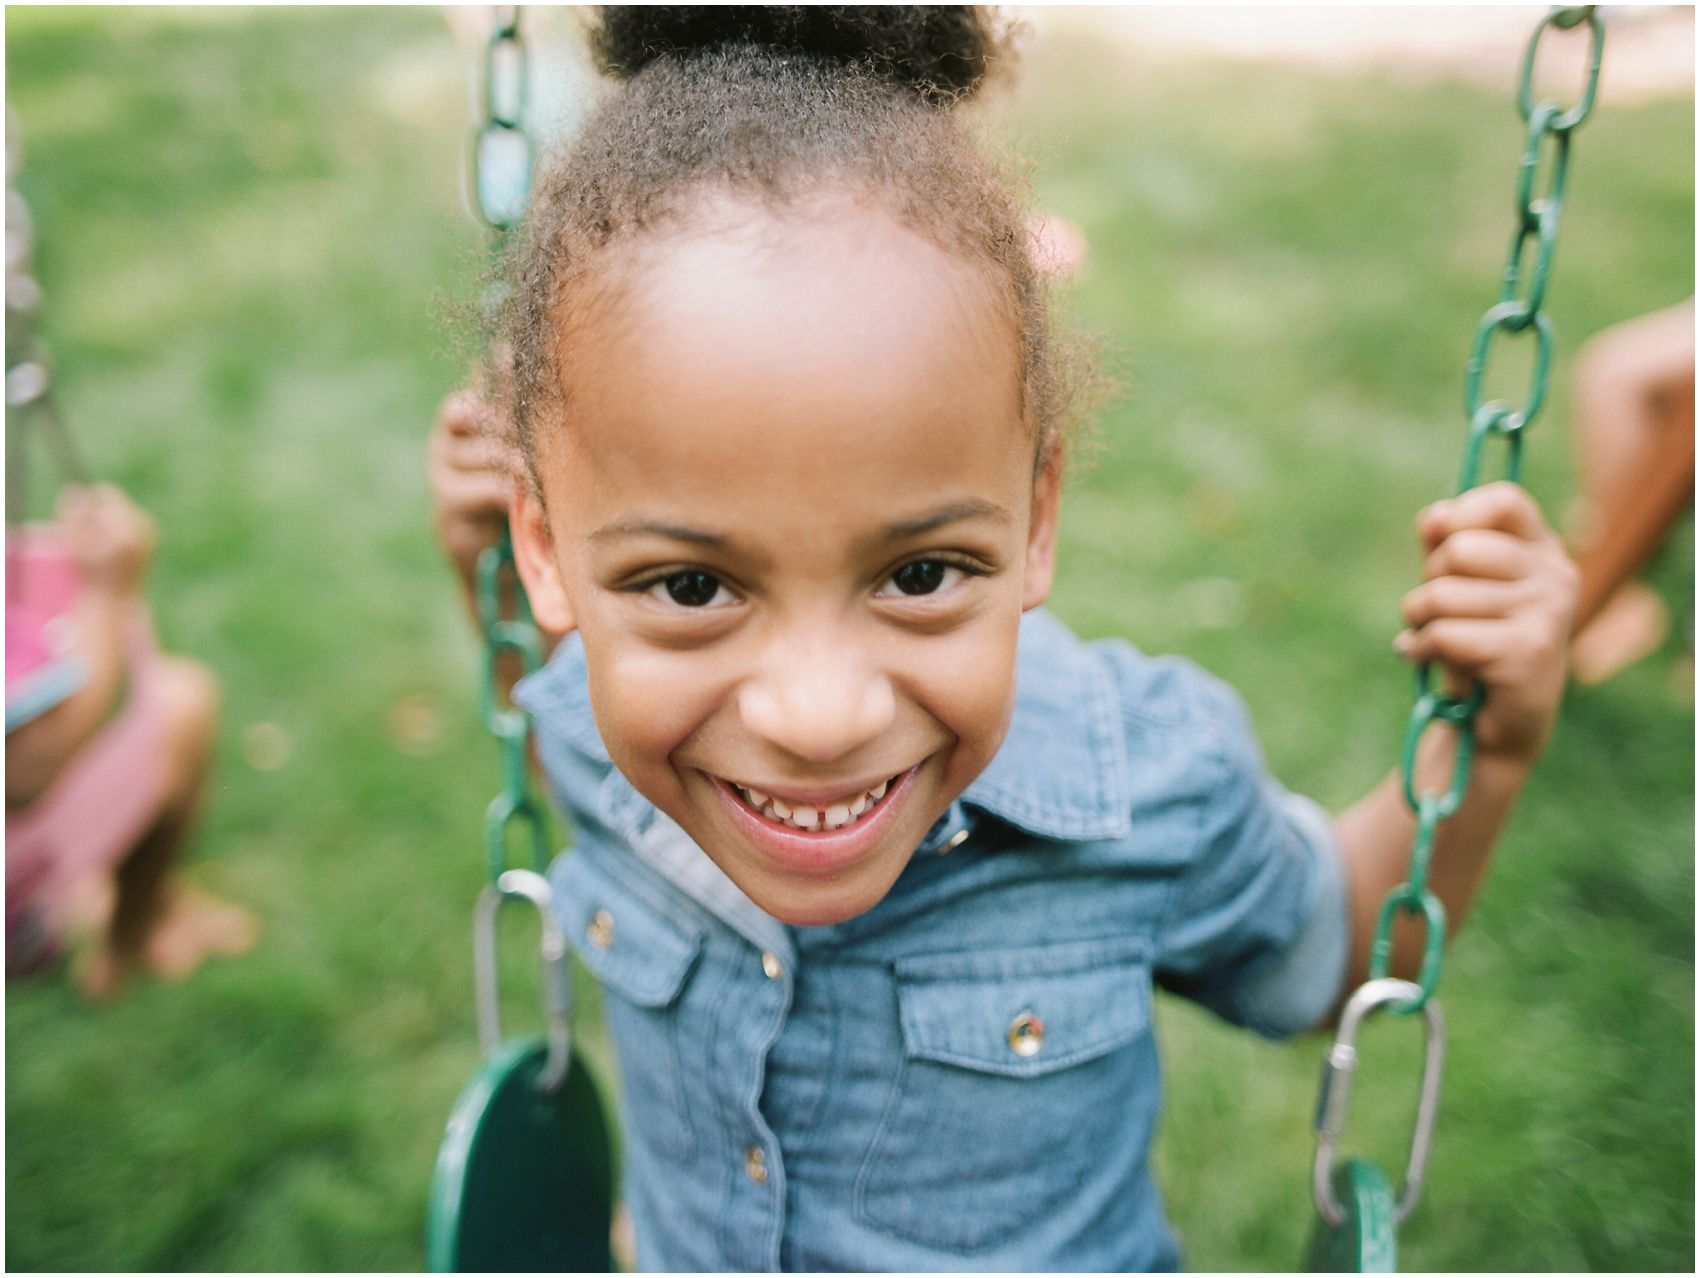 smiling and laughing girl on a swing in her Upper Montclair NJ backyard